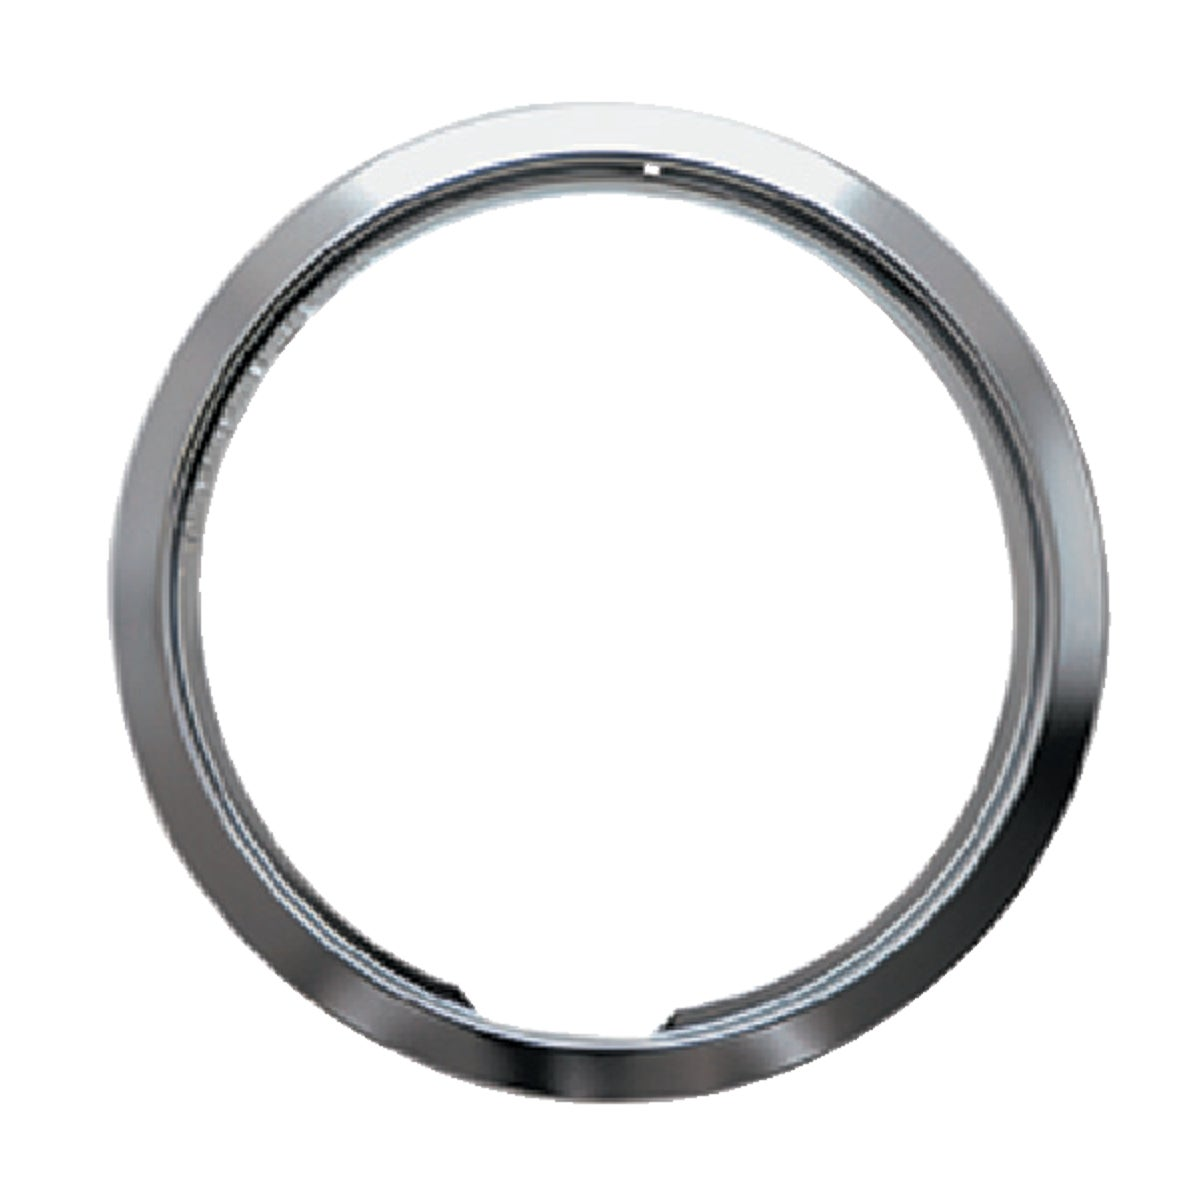 "8"" CHROME TRIM RING"